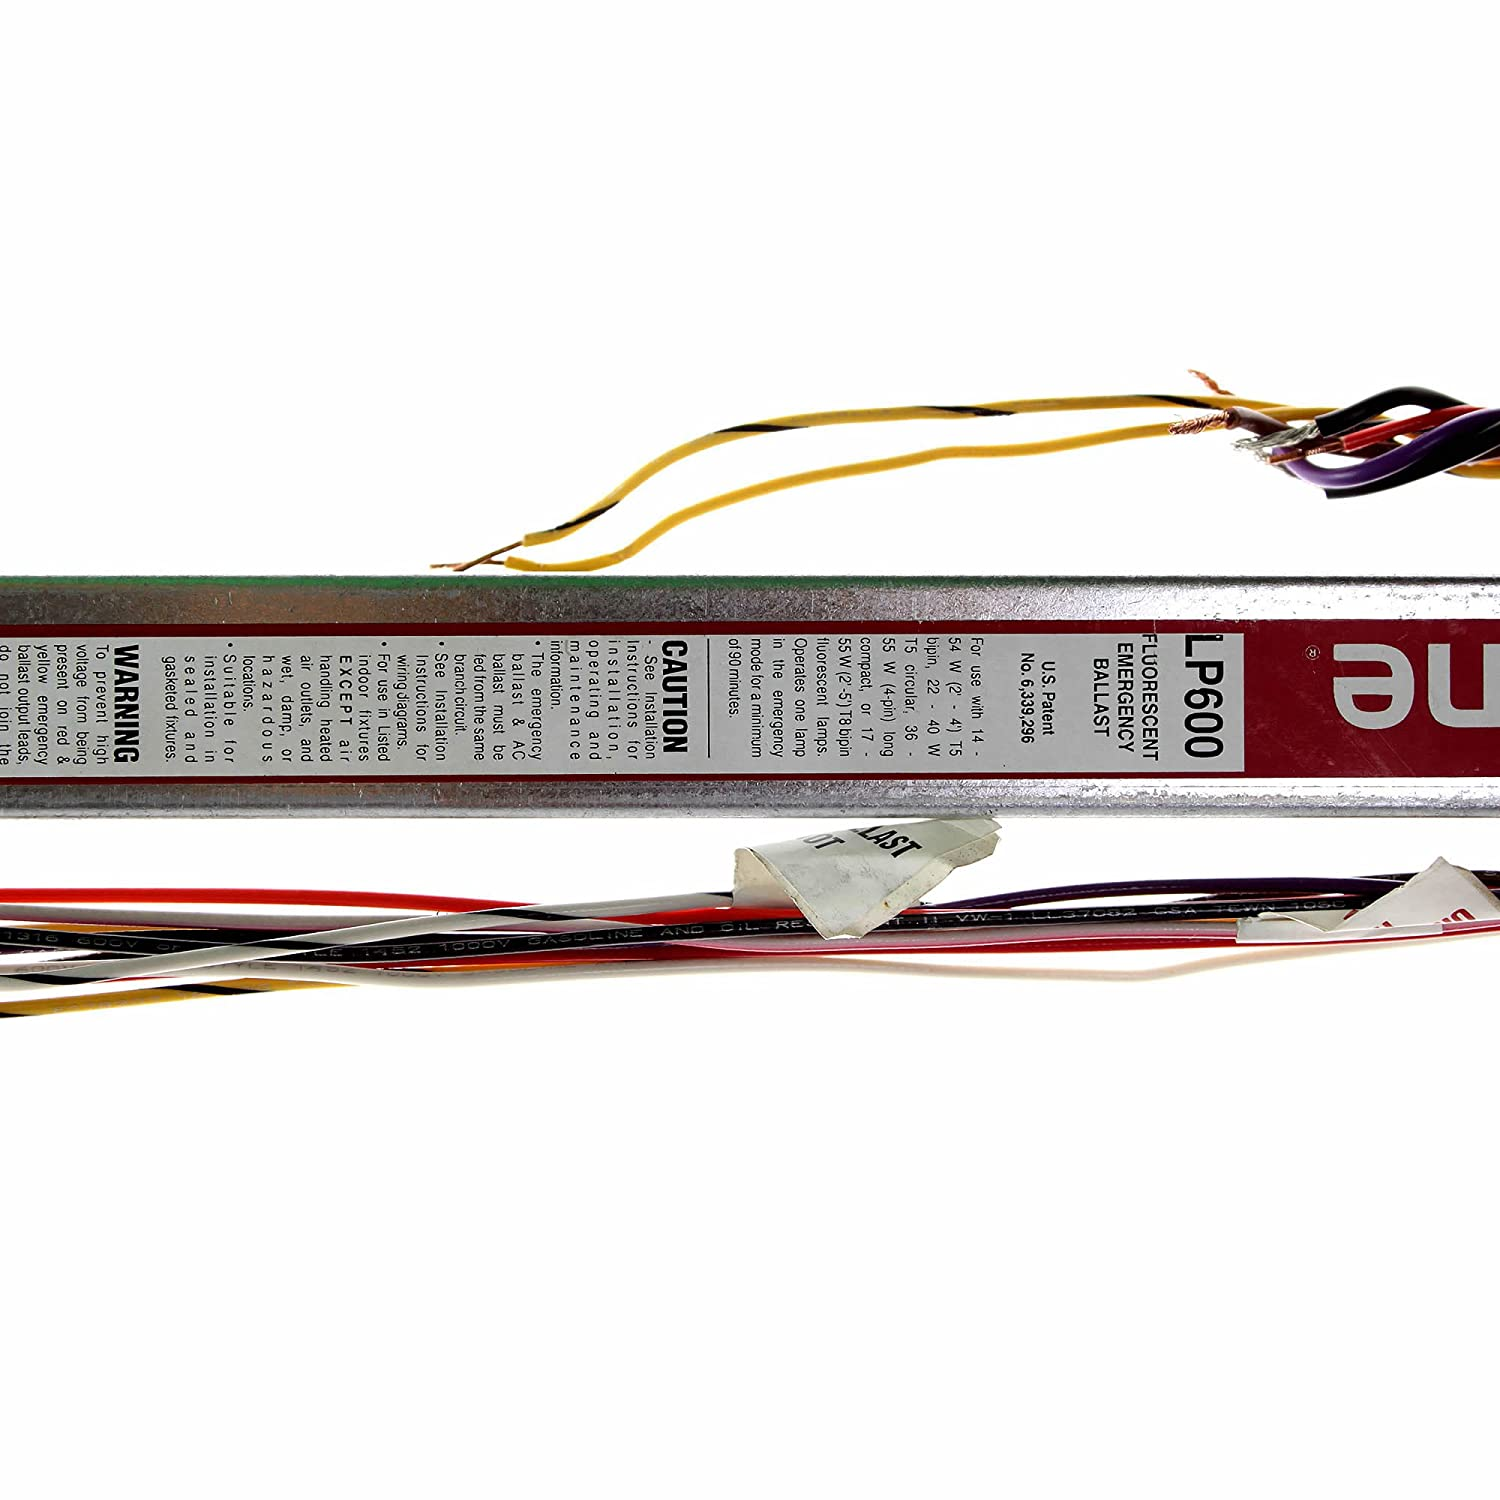 81fQp2Nnd8L._SL1500_ bodine lp600 linear fluorescent emergency ballast electrical iota isl 540 wiring diagram at gsmportal.co